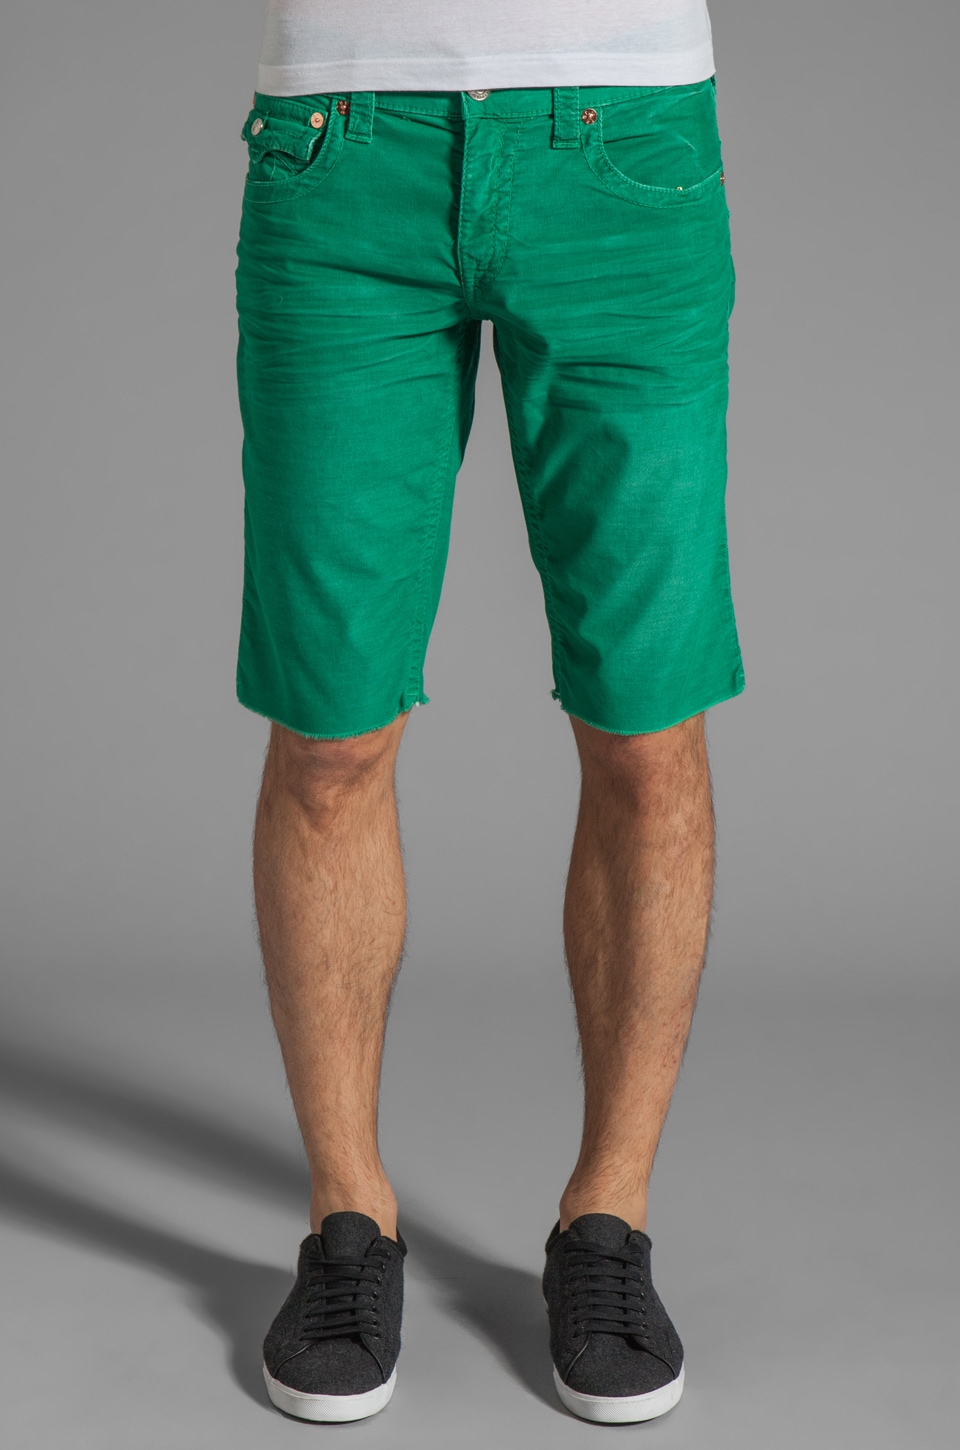 True Religion Ricky Corduroy Cut Off Short in Kelly Green